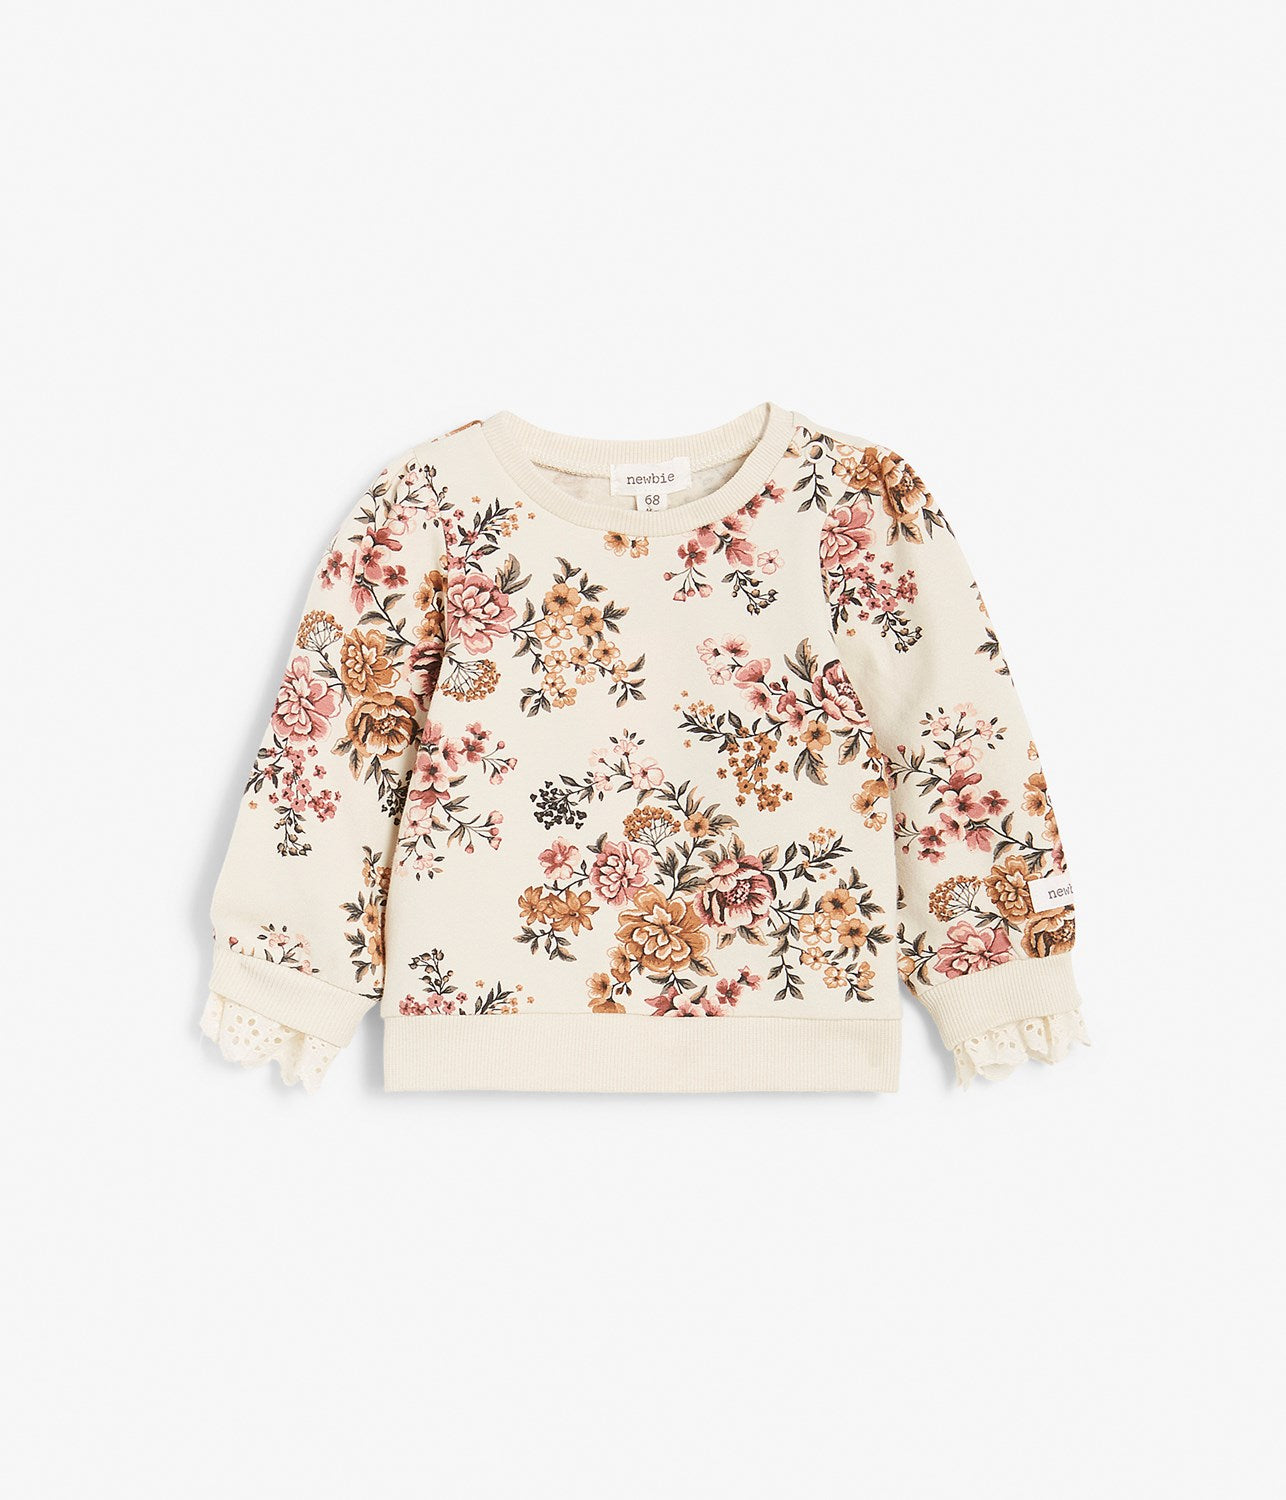 Baby beige floral print jumper with lace